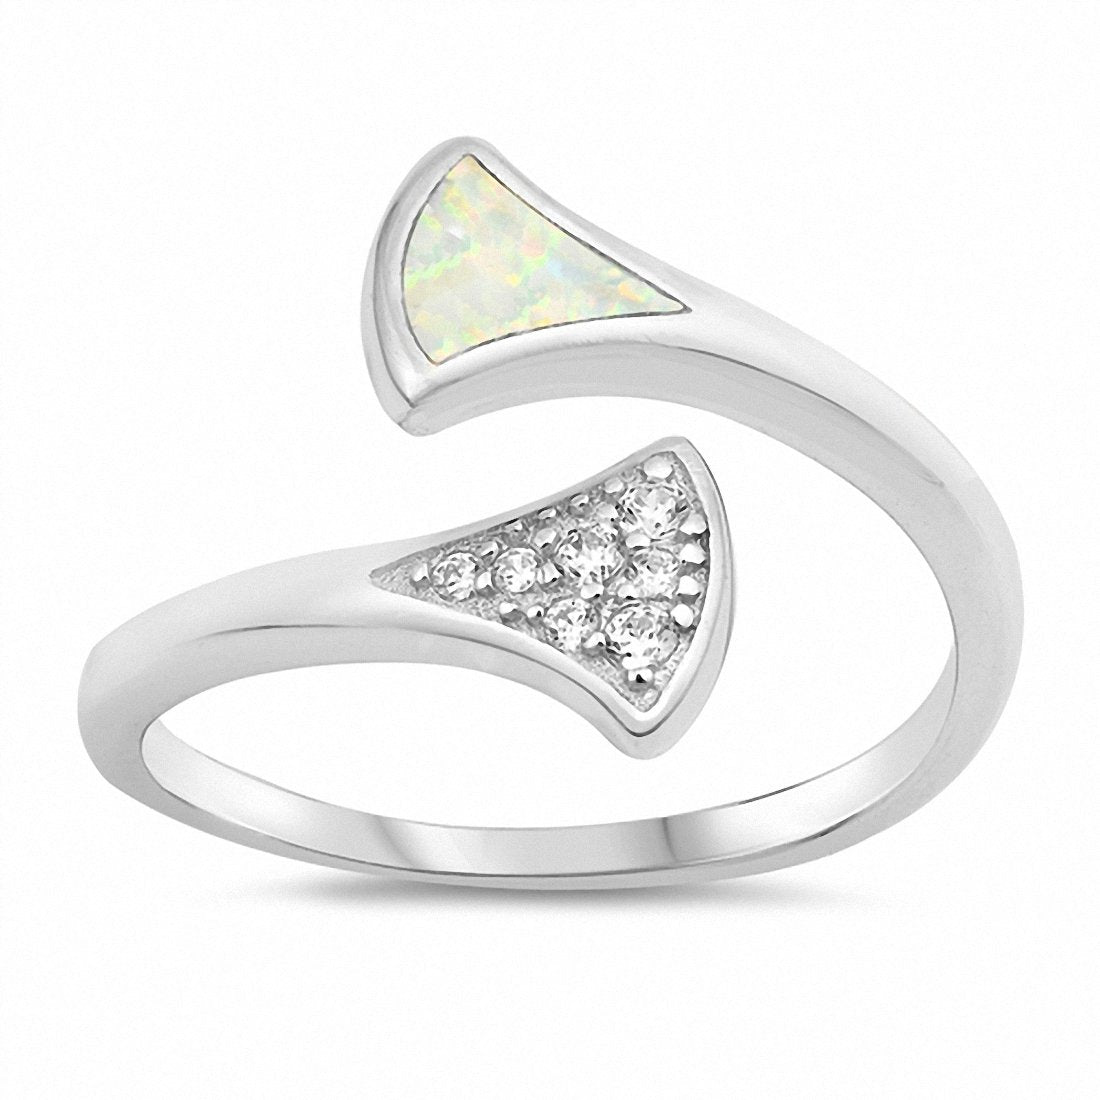 Fashion Bypass Wrap Design Ring Created Opal 925 Sterling Silver Choose Color